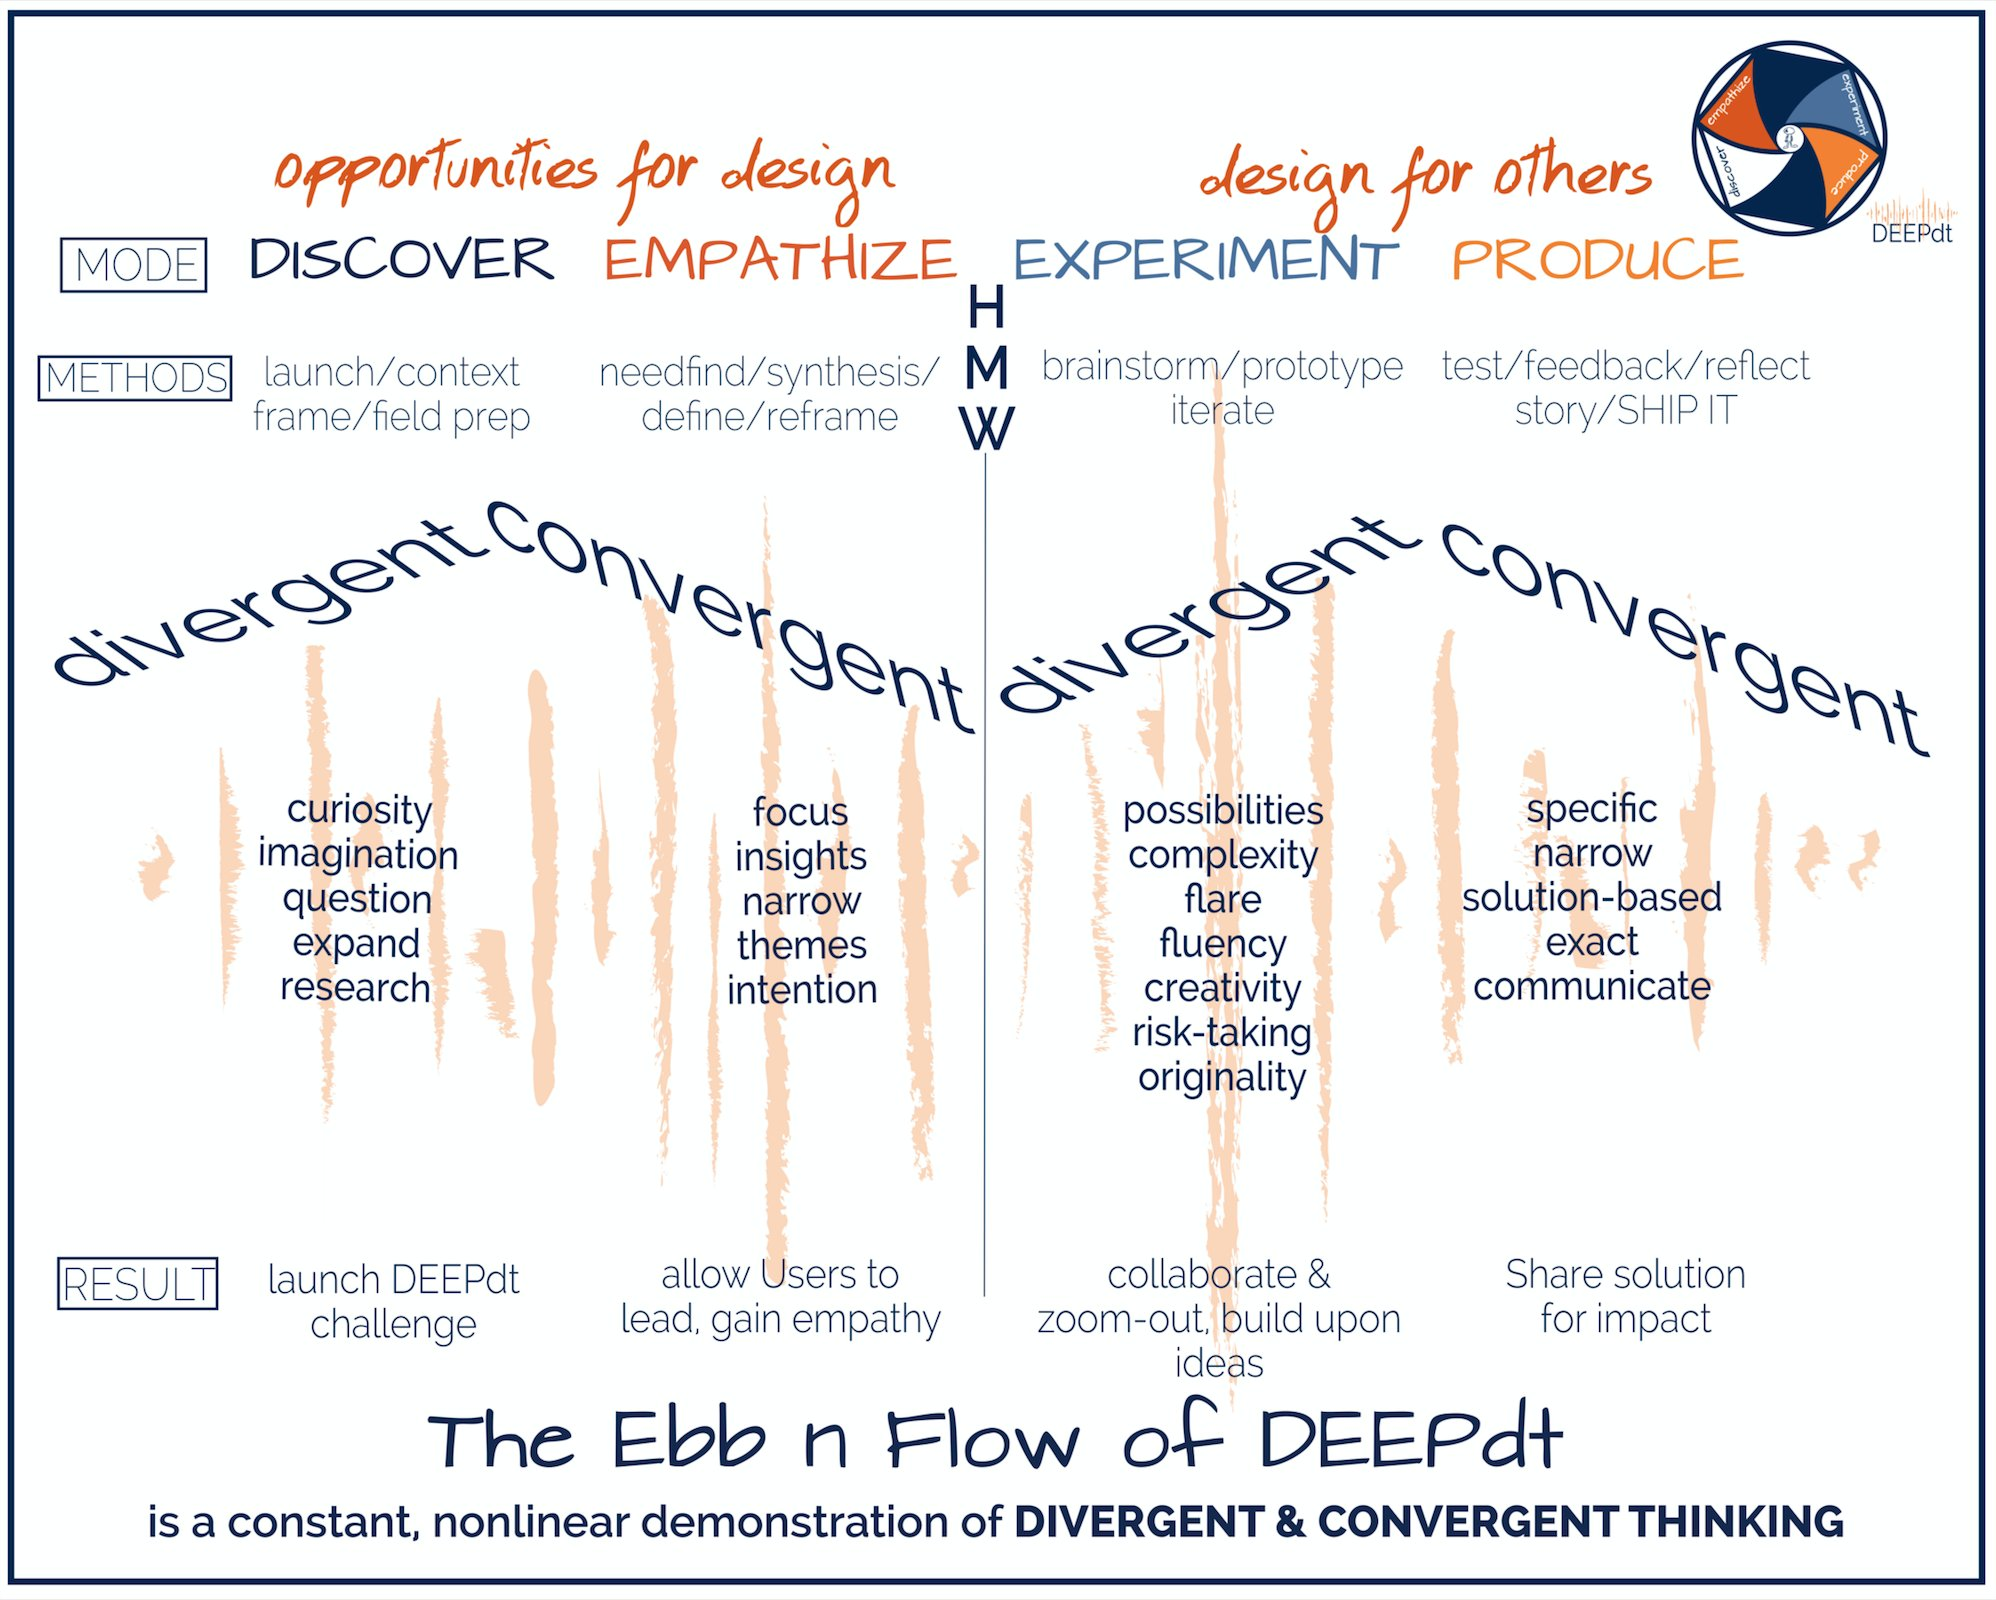 Divergent Convergent The Ebb N Flow of #DEEPdt Seeking Opportunities for design to Design for Others #dtk12chat #FutureNOWedu (a busy image) https://t.co/GtQMShHDta